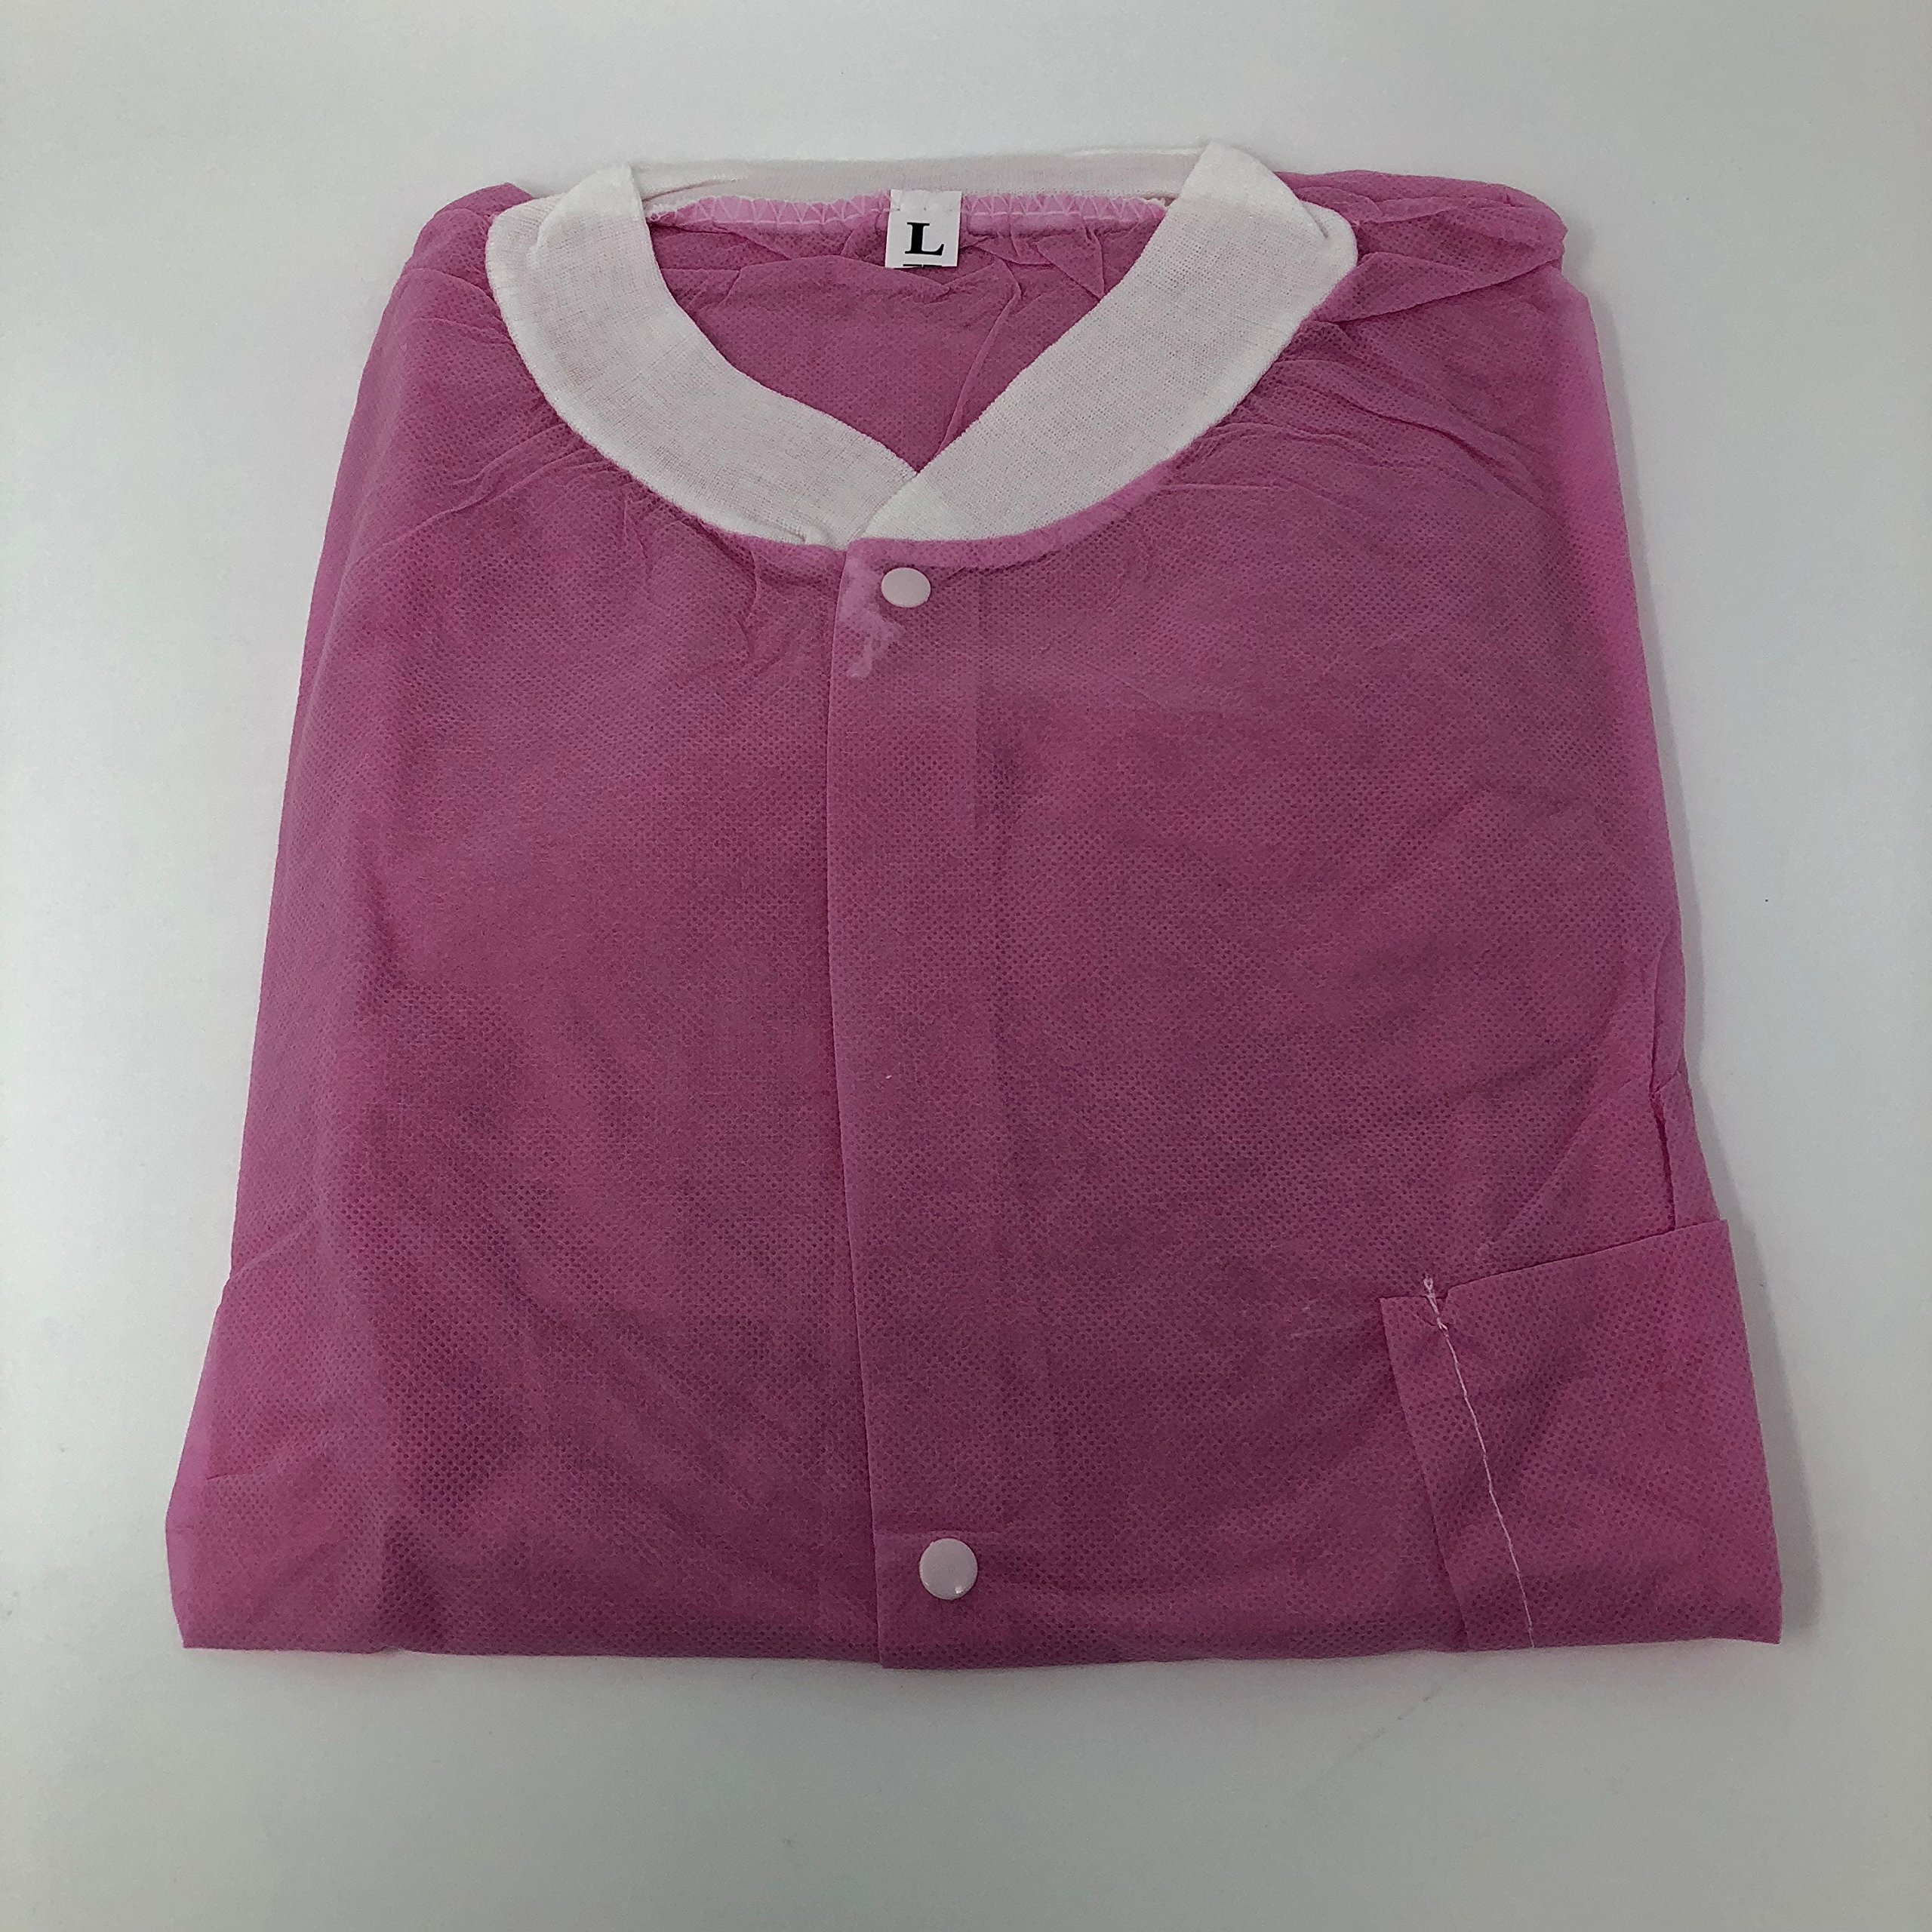 Professional Smooth and Soft Non-Woven Disposable Lab Jacket w/ Knit Cuffs and Collar, 5 Snap-on Buttons and 2 Large Front Pockets. Latex Free and Fluid Resistant. 10 PCS / PACK (Medium, Pink)